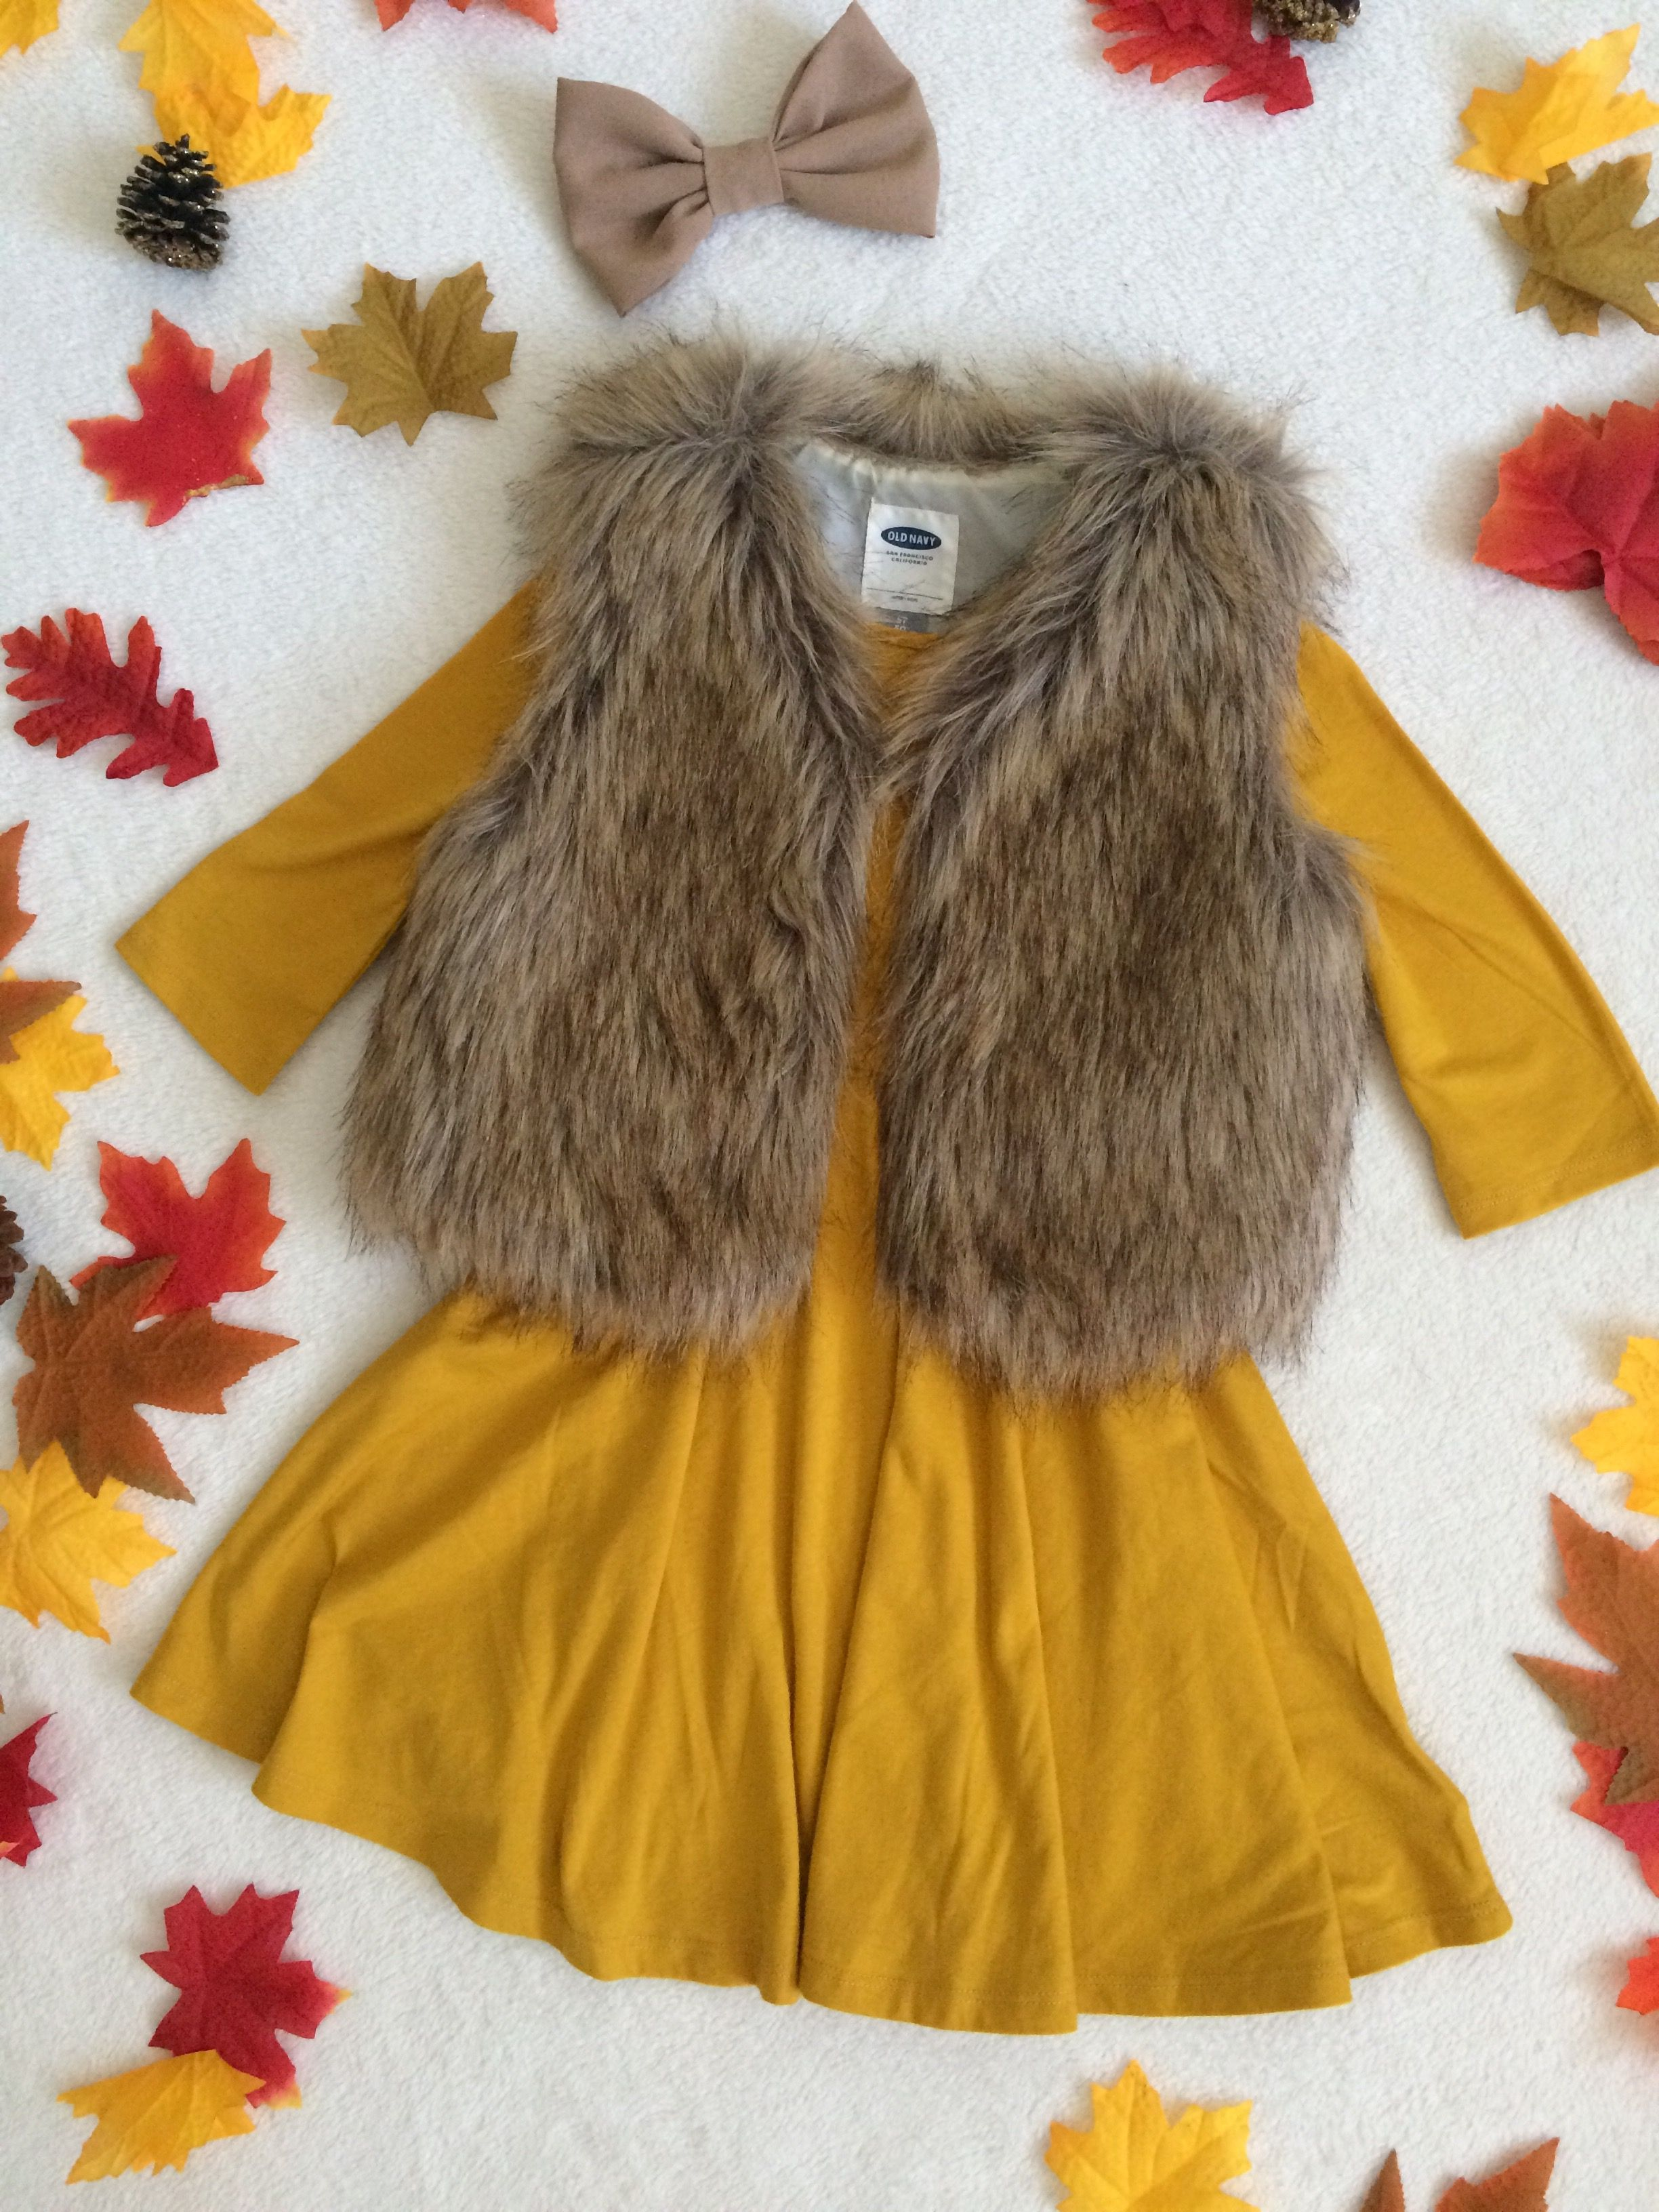 Fall outfit fur vest kids outfit old navy mustard dress fall